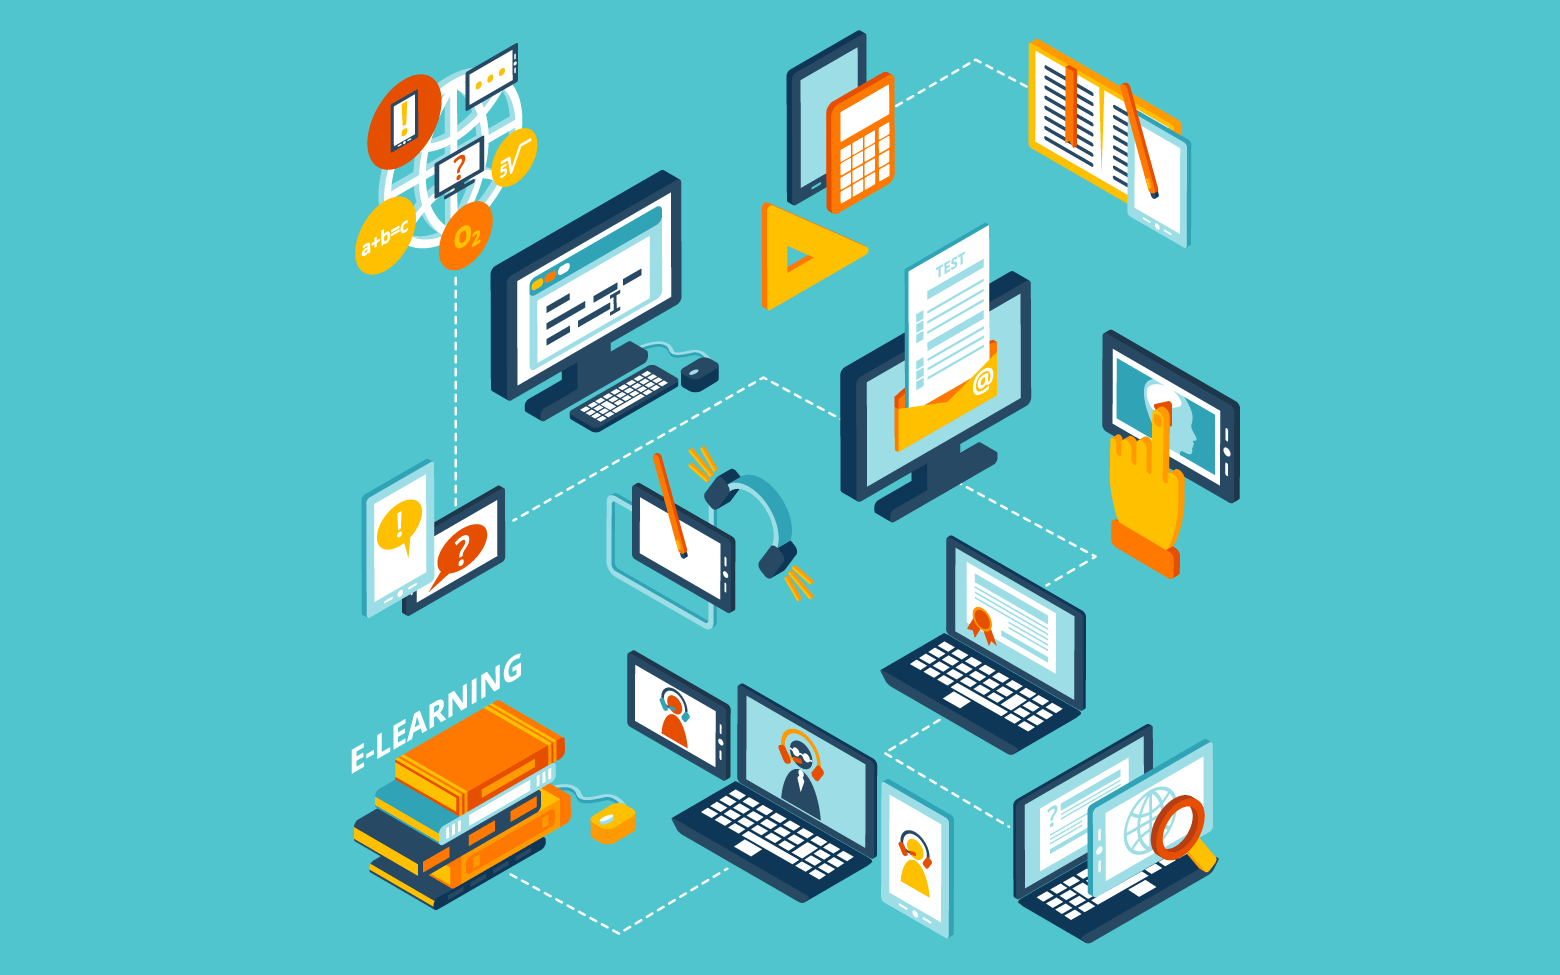 Building EdTech Products with Strong Pedagogy & Instructional Design